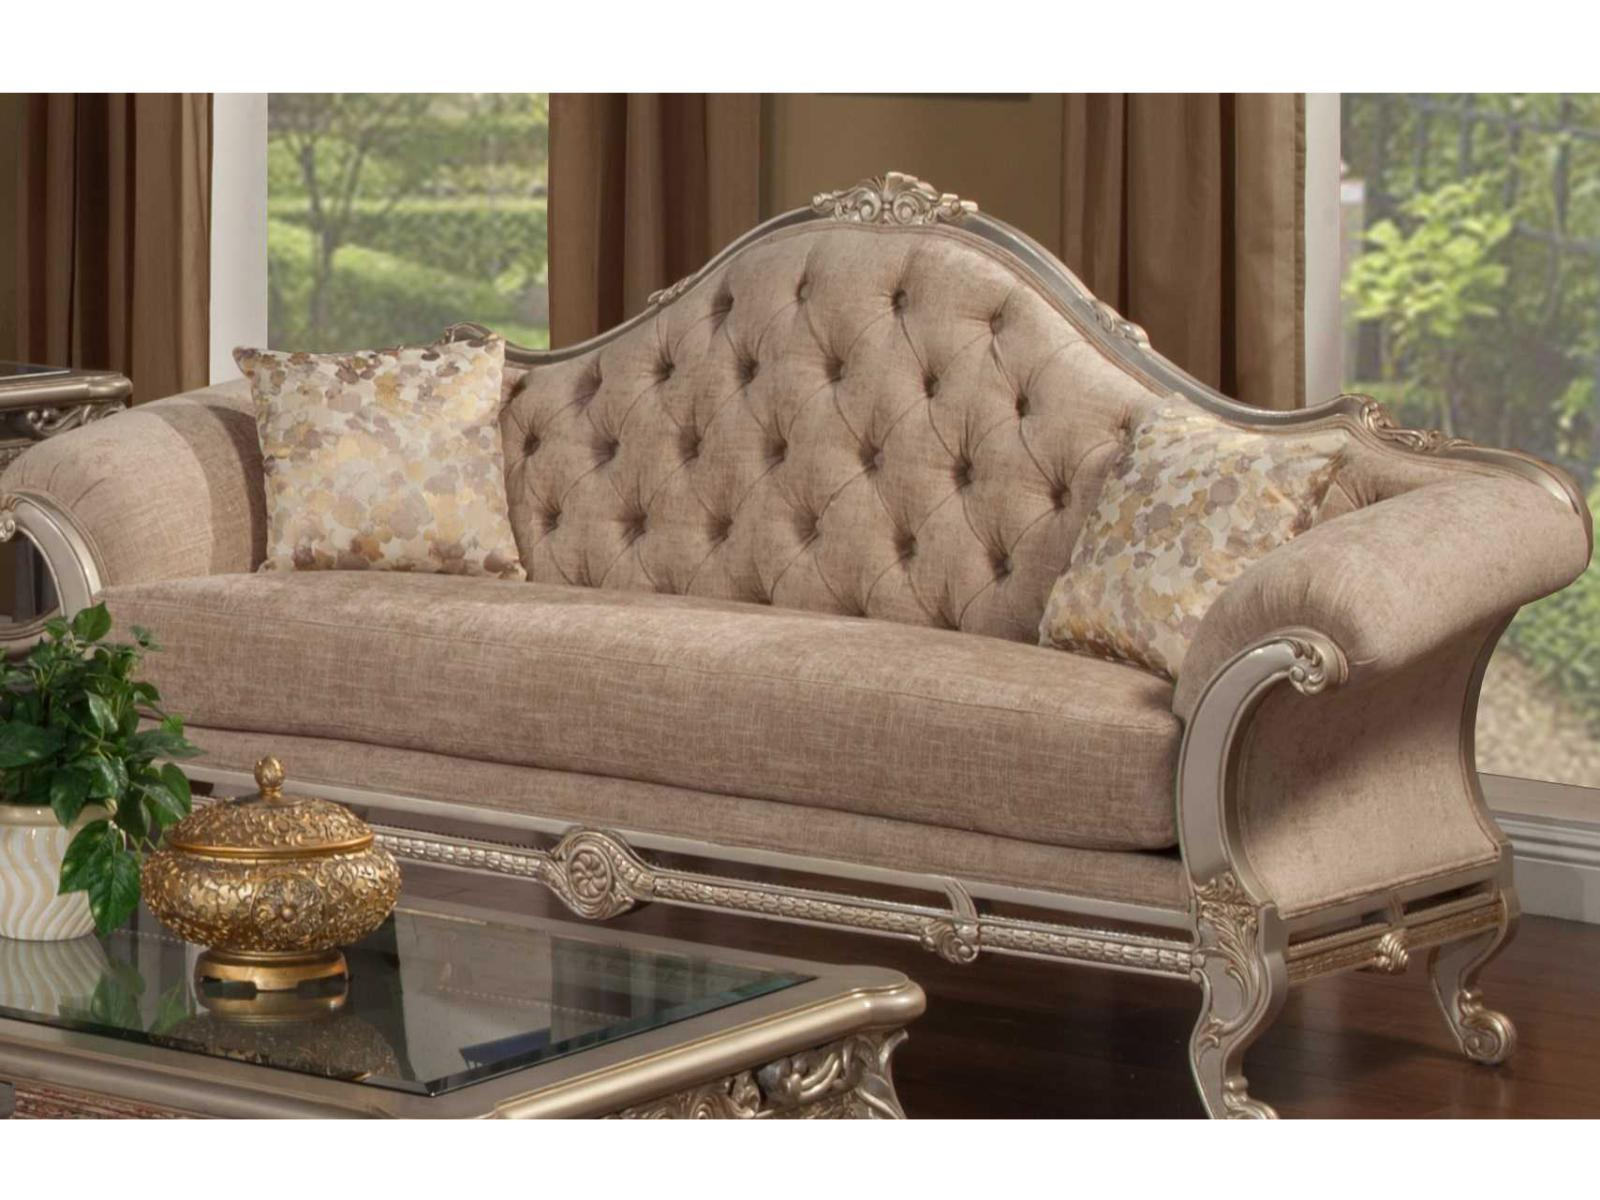 Bennetti Luxury Beige Chenille Silver Carved Wood Sofa Rosella Sofa Silver Classic Traditional